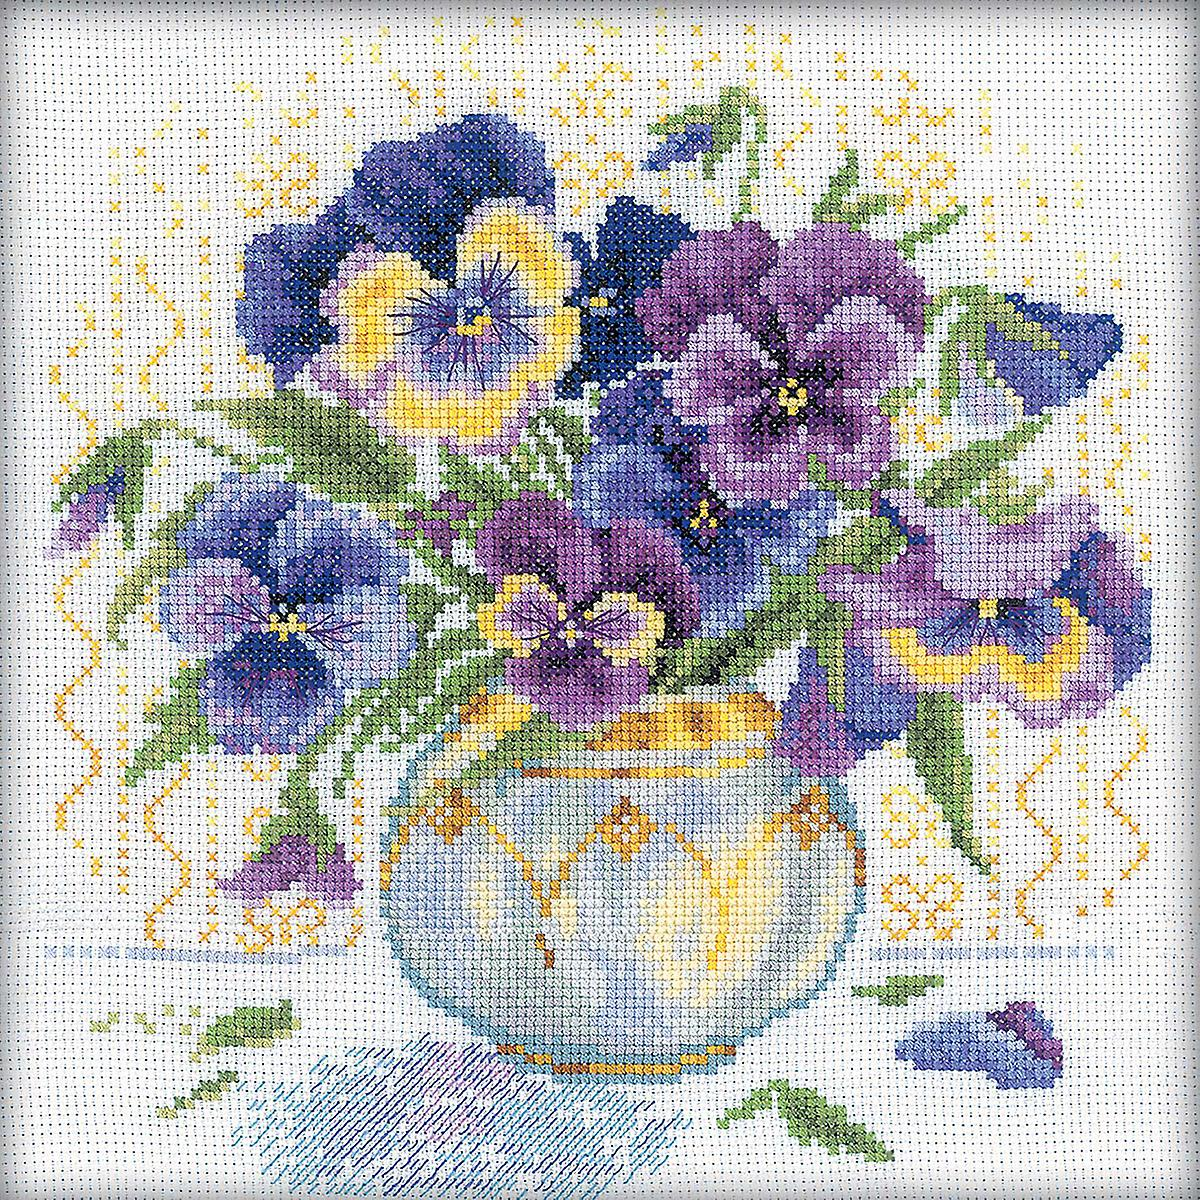 Pansies Counted Cross Stitch Kit-9